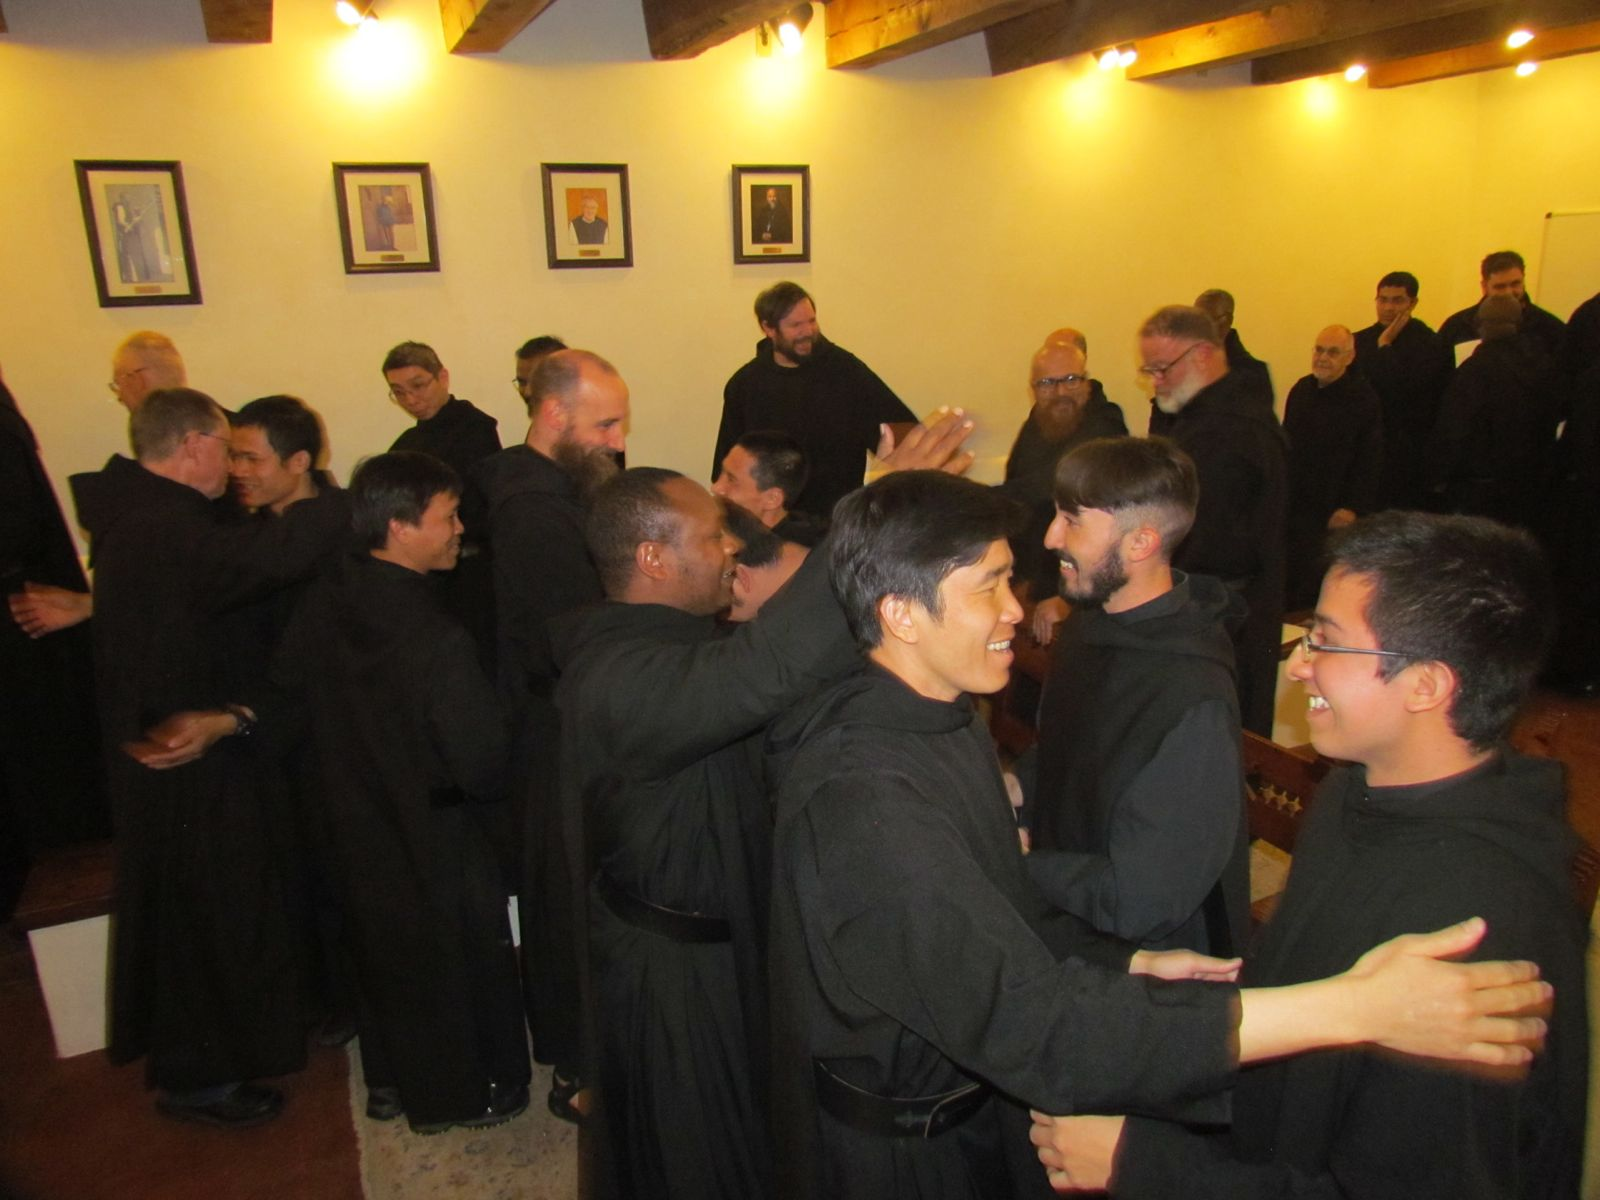 Exchanging the Sign of Peace after postulants have become novices